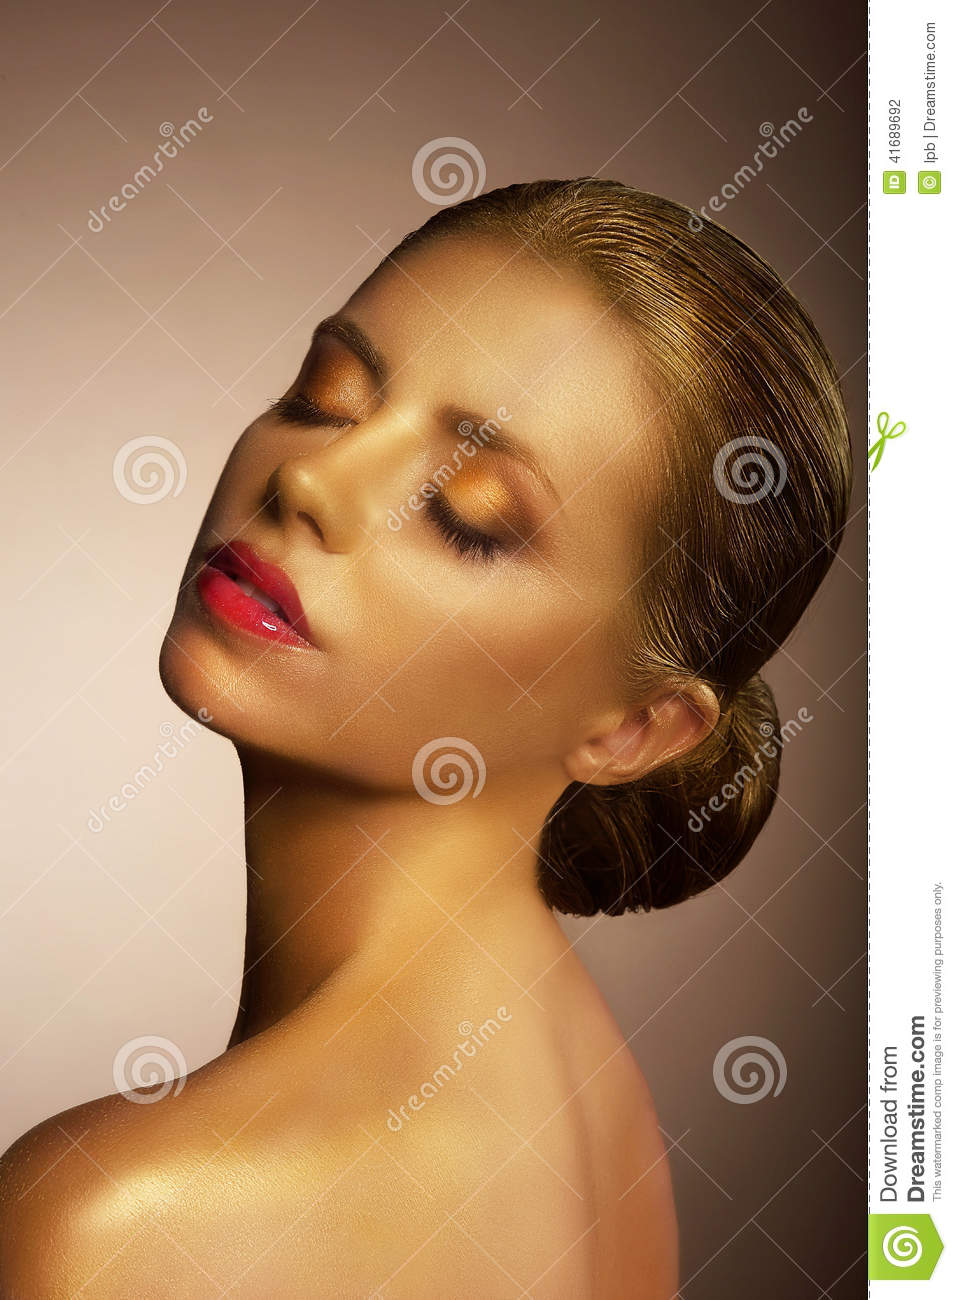 Artistry Fanciful Bronzed Womans Face Futuristic Art